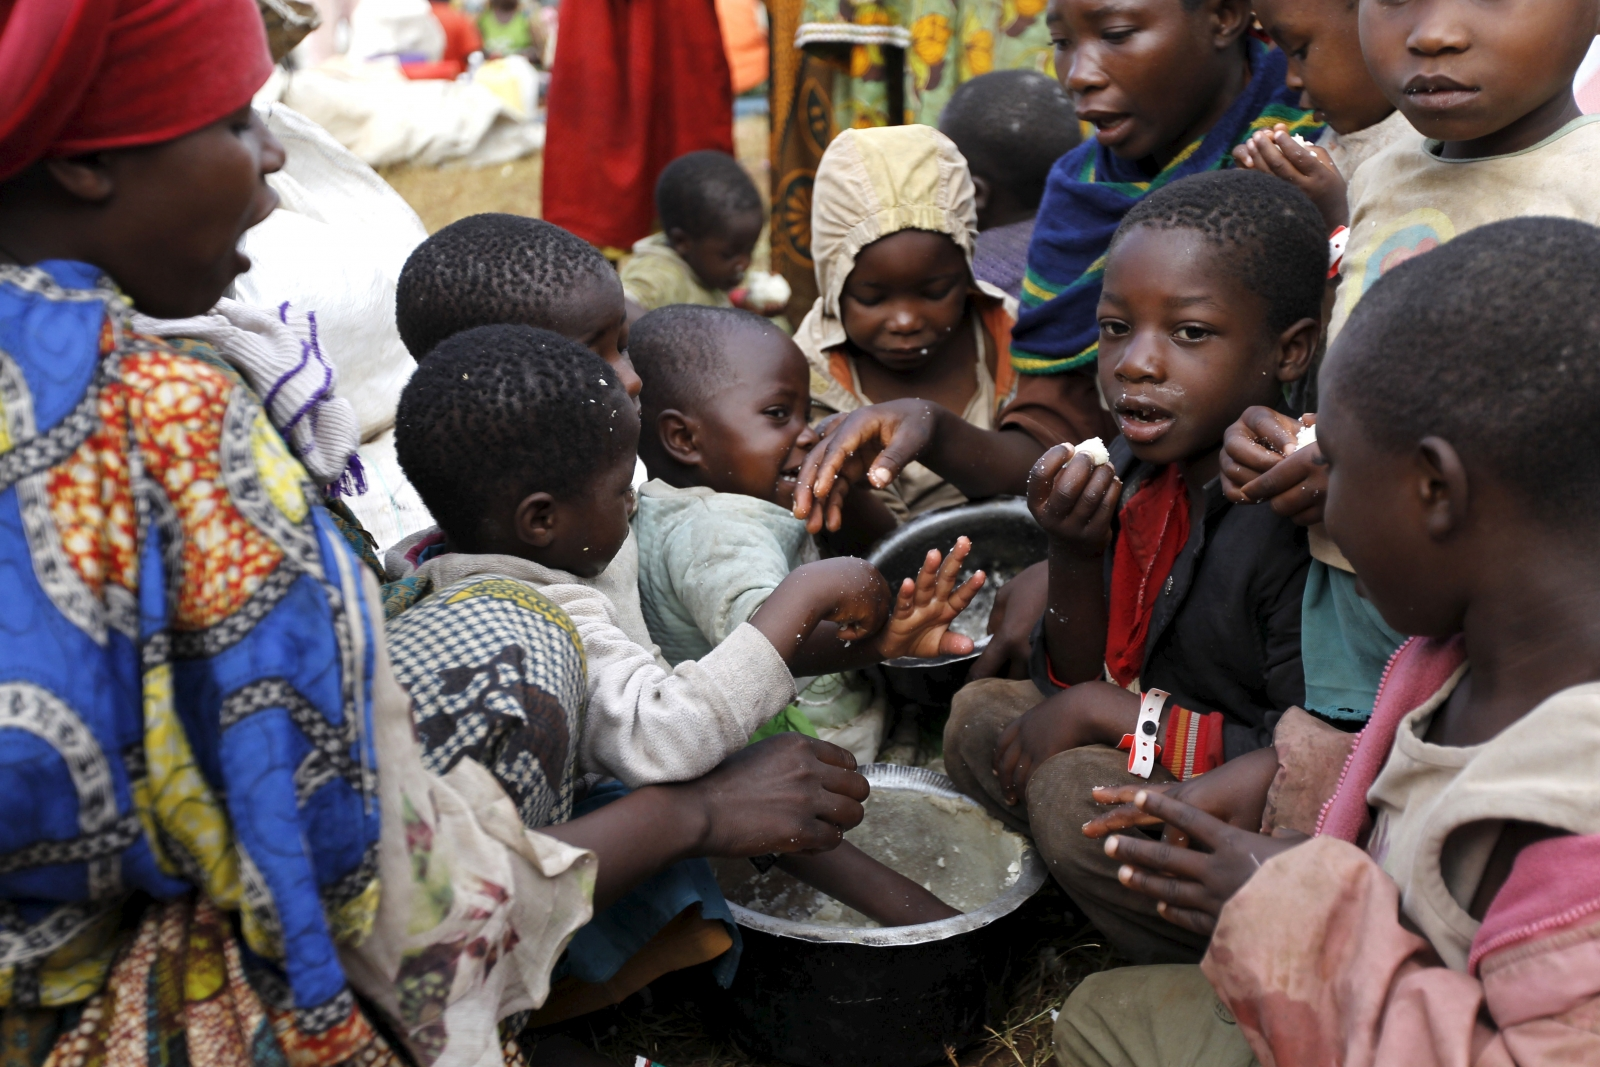 Children refugee Burundi food